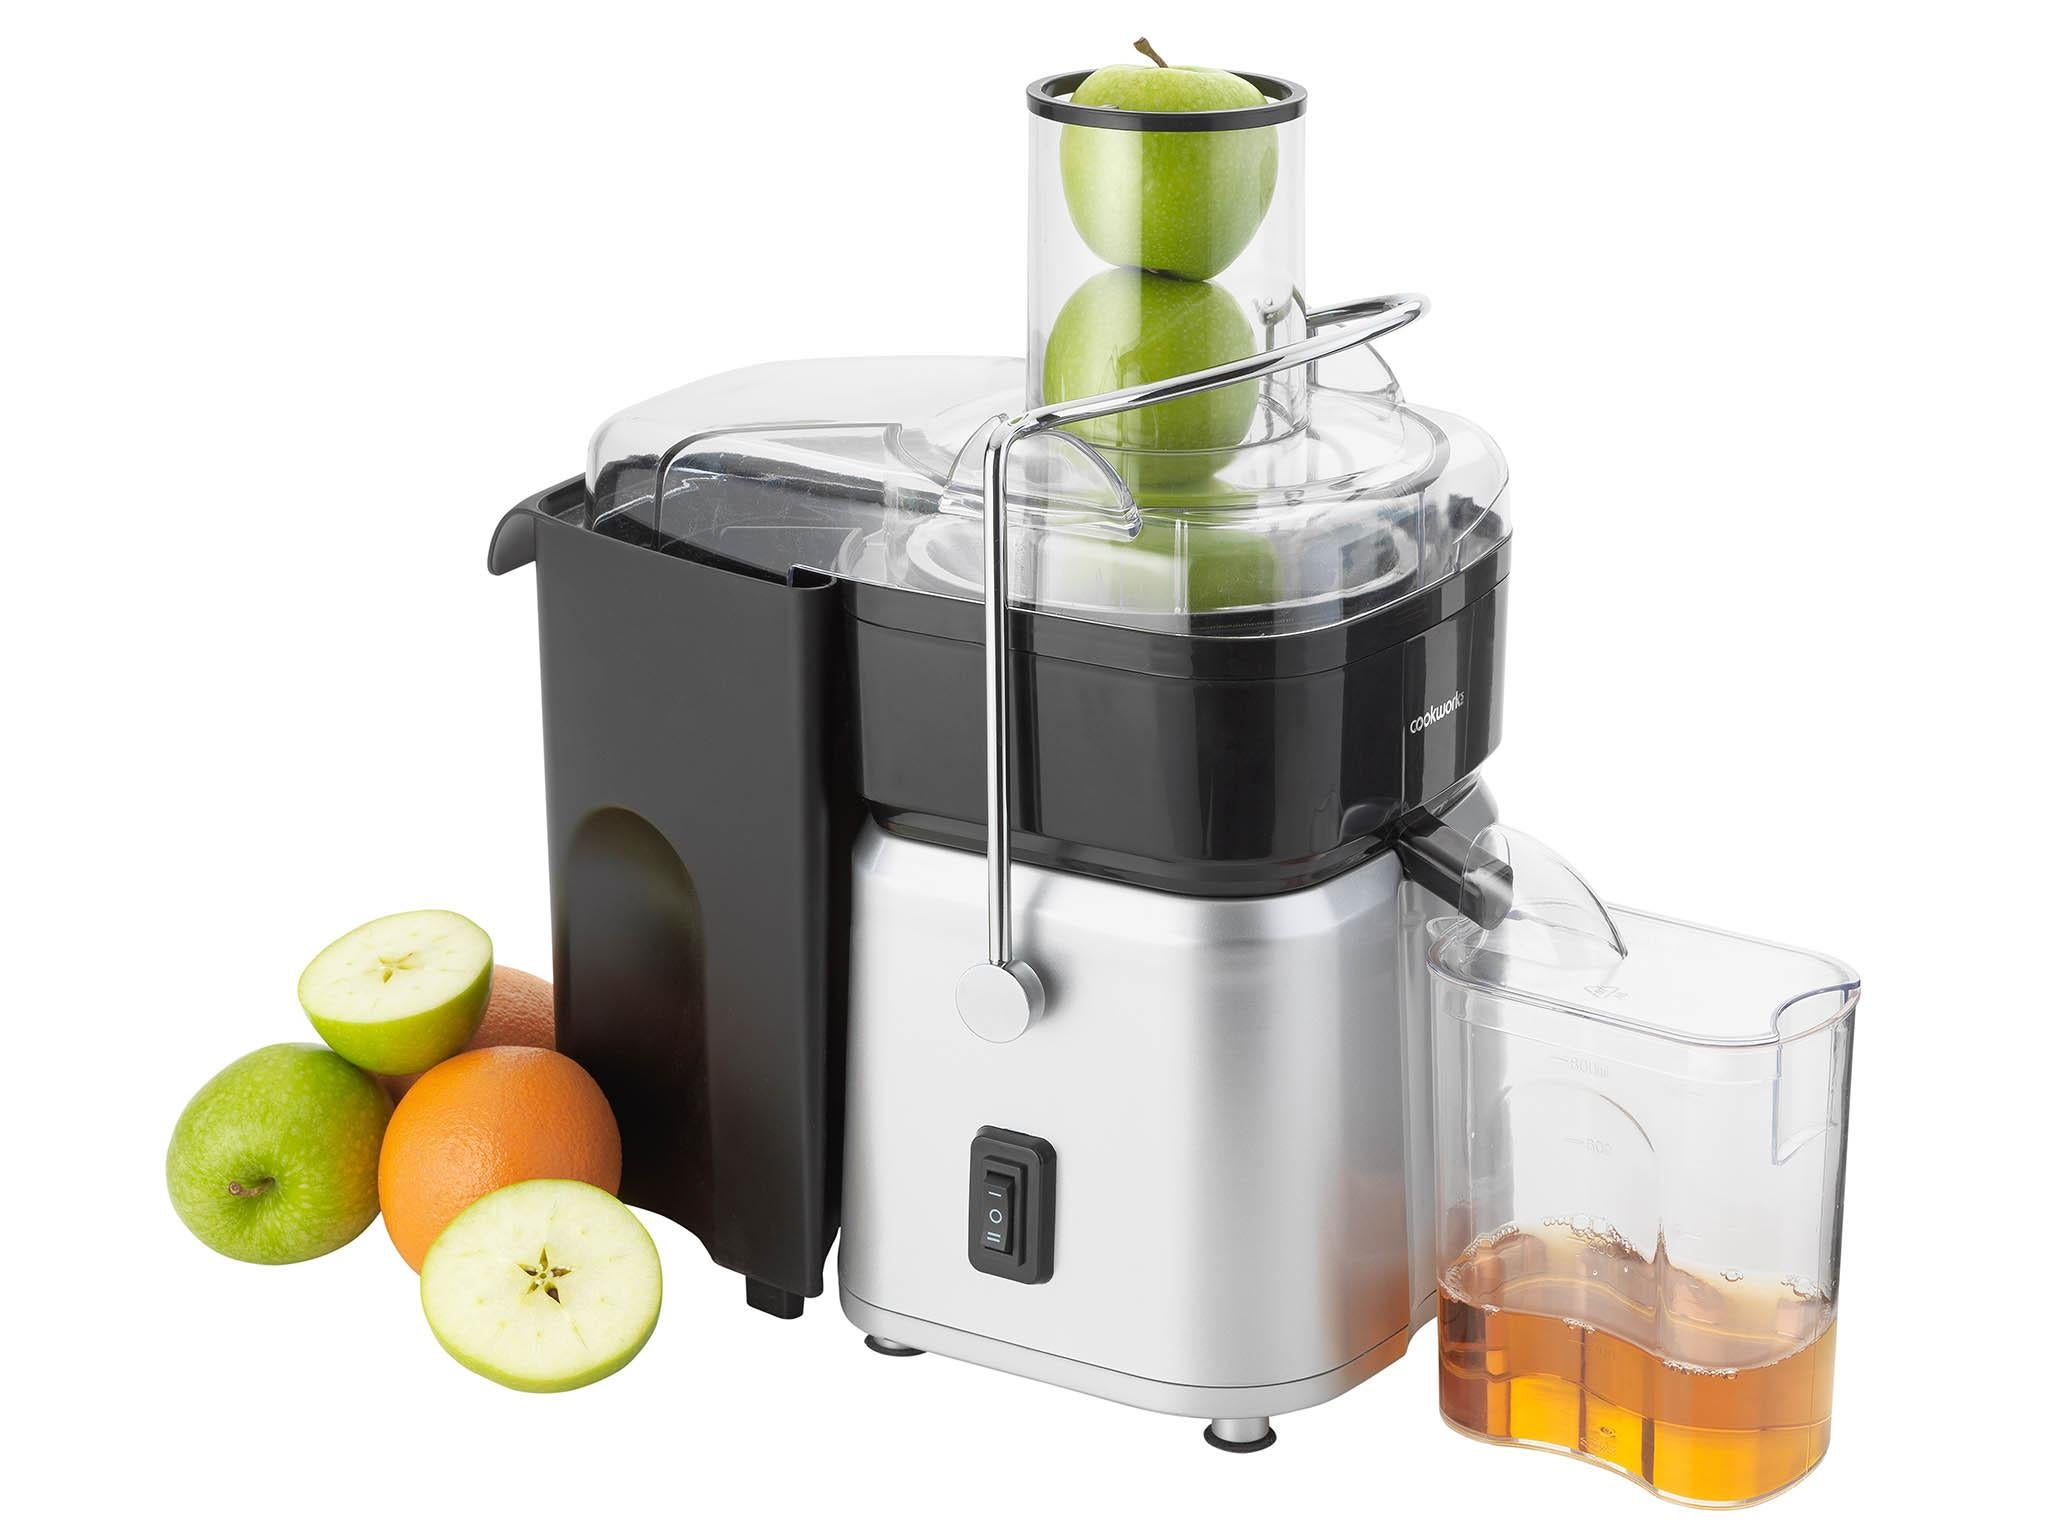 10 best juicers | The Independent